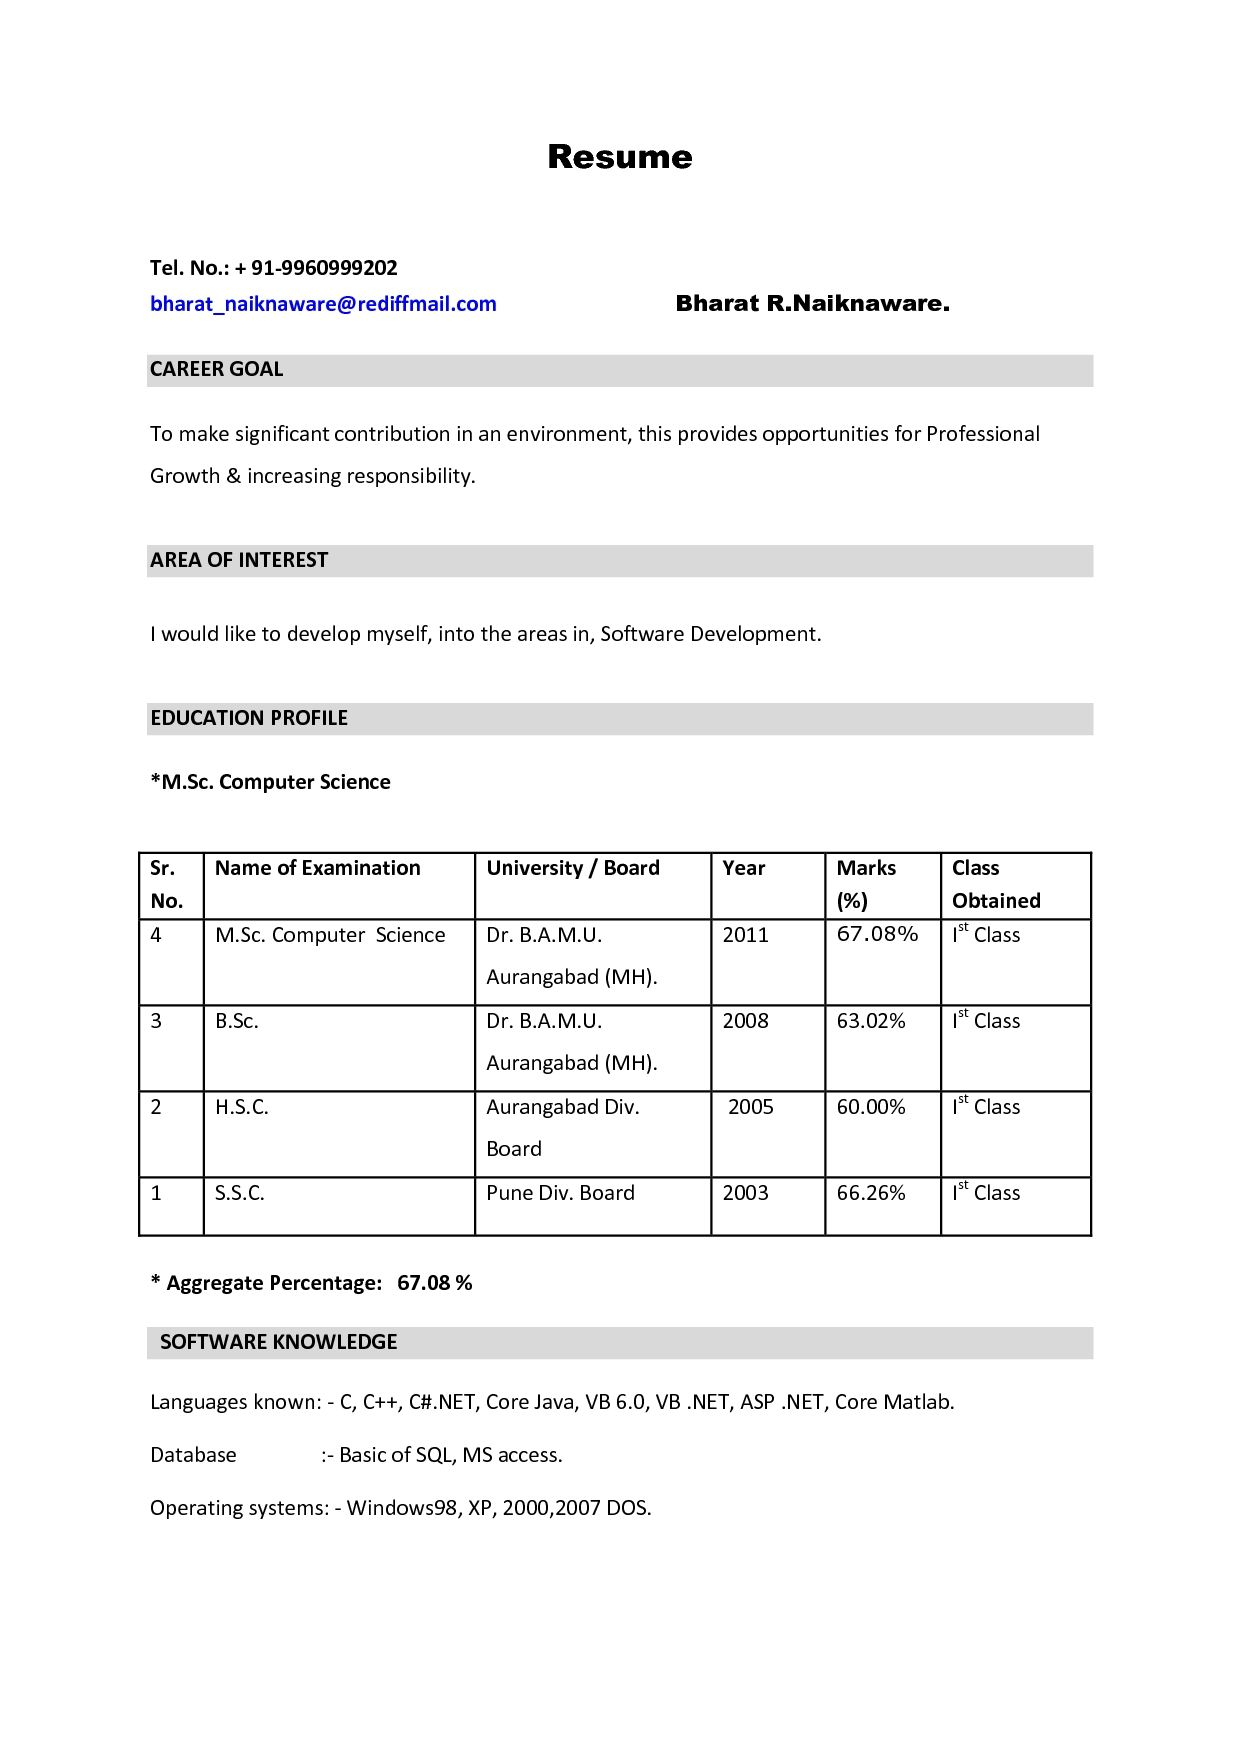 Resume Format For Job Magnificent Best Resume Format Pdf For Freshers Sample Job Resume Format Vinay